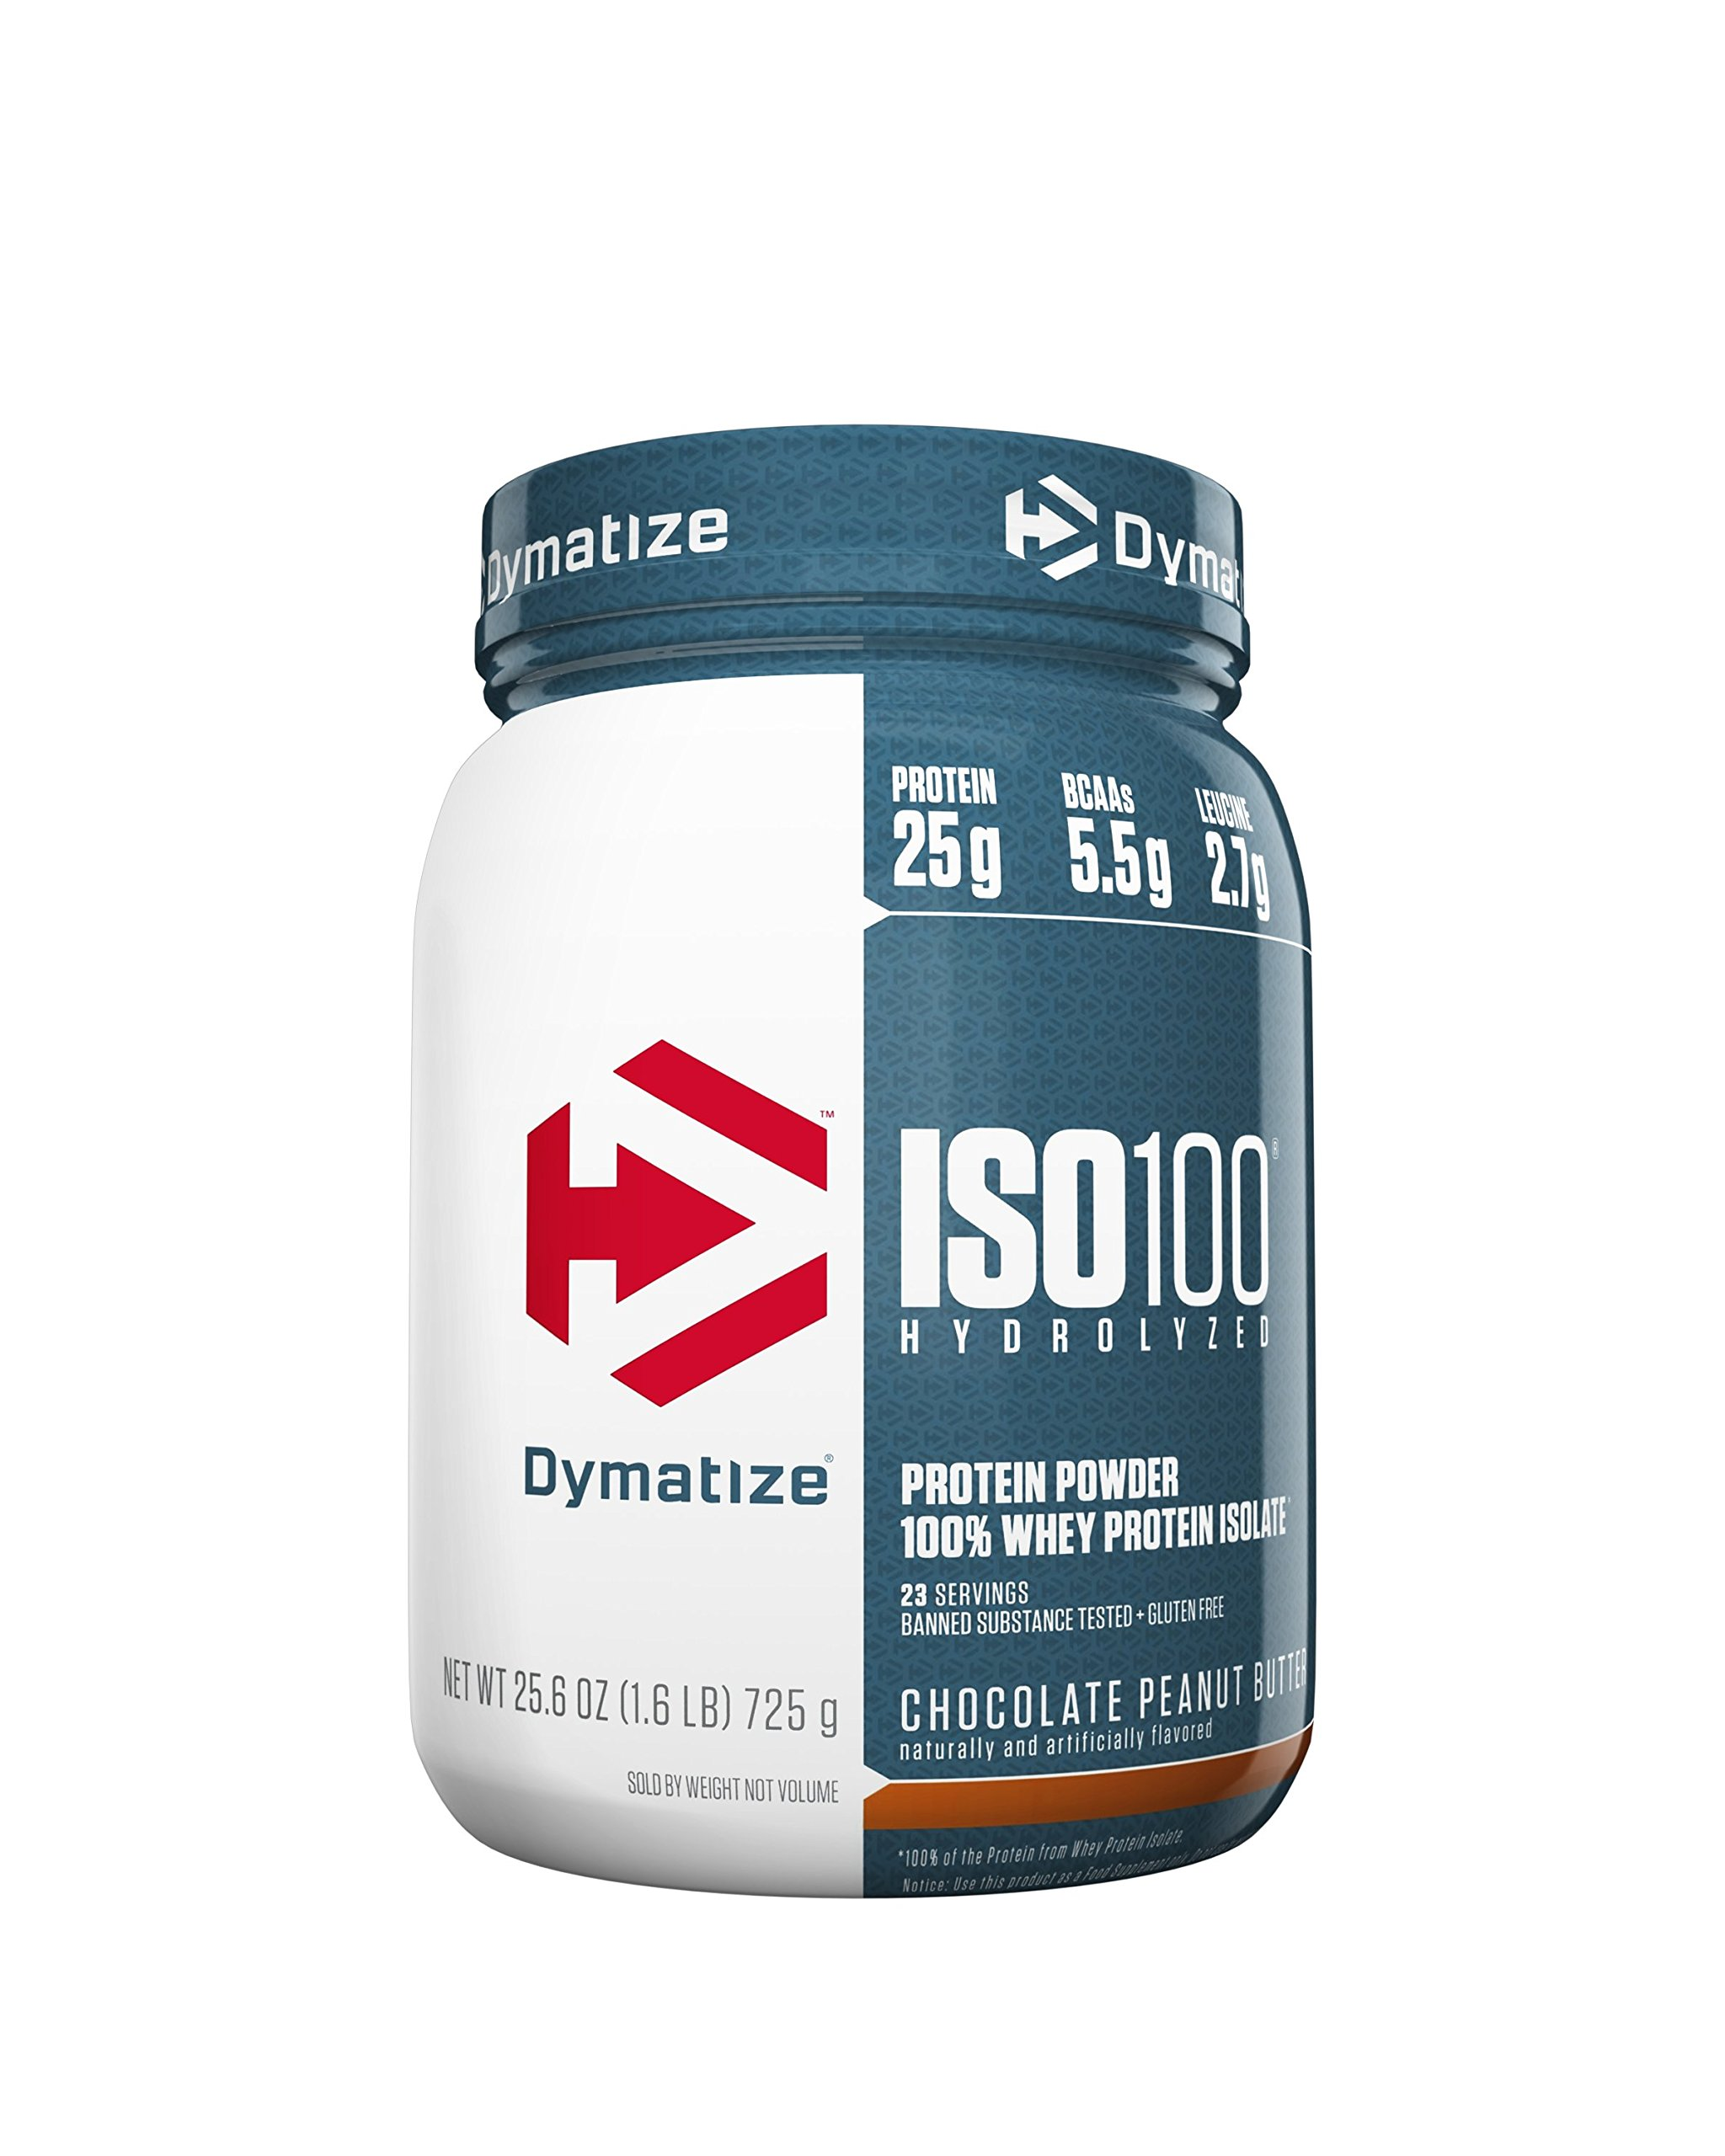 Dymatize ISO 100 Whey Protein Powder Isolate Chocolate Peanut Butter 16 Pound